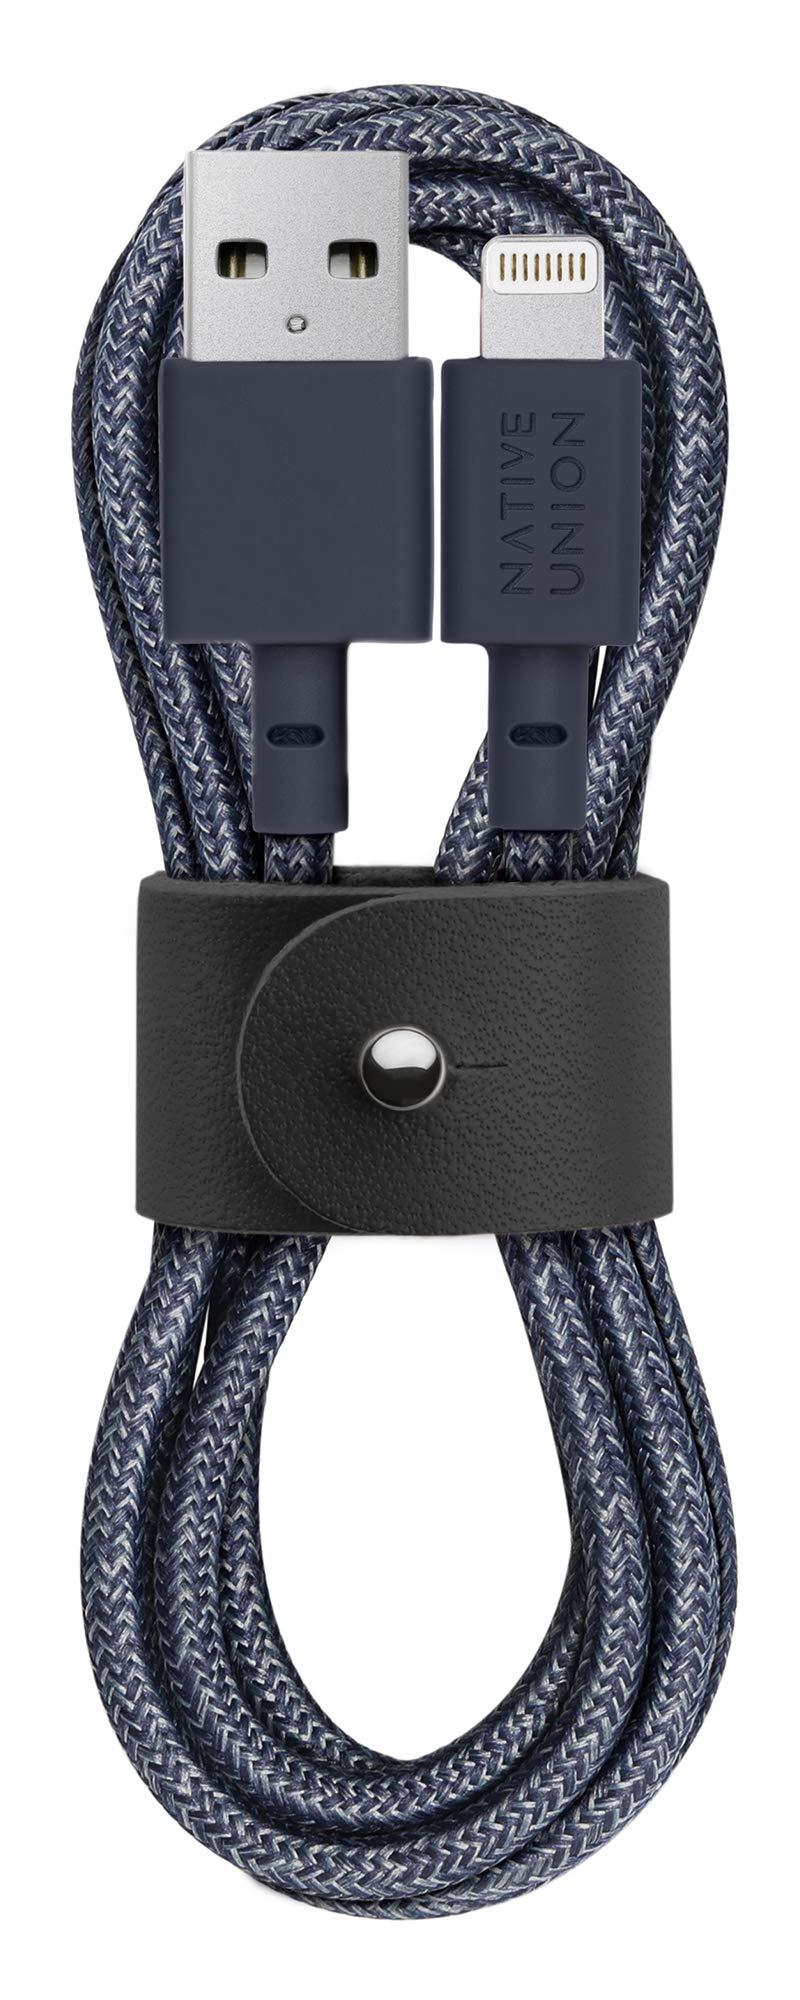 Native Union Belt Cable - 4ft Ultra-Strong Reinforced [Apple MFi Certified] Durable Lightning to USB Charging Cable with Leather Strap for iPhone/iPad (Indigo)